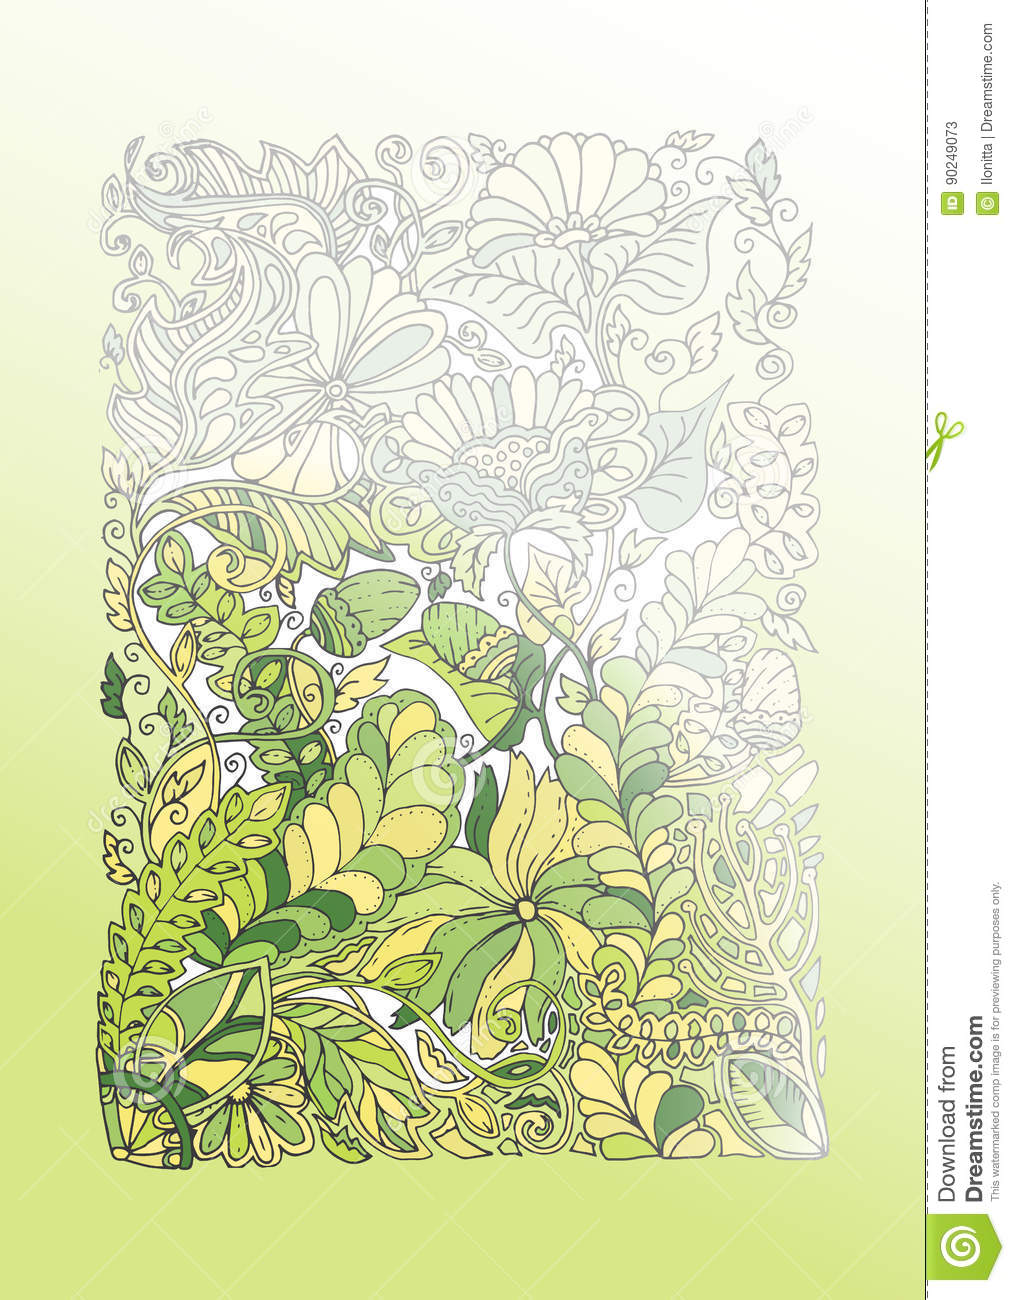 Green Spring Doodle Illustration, Half Coloring Stock Vector ...